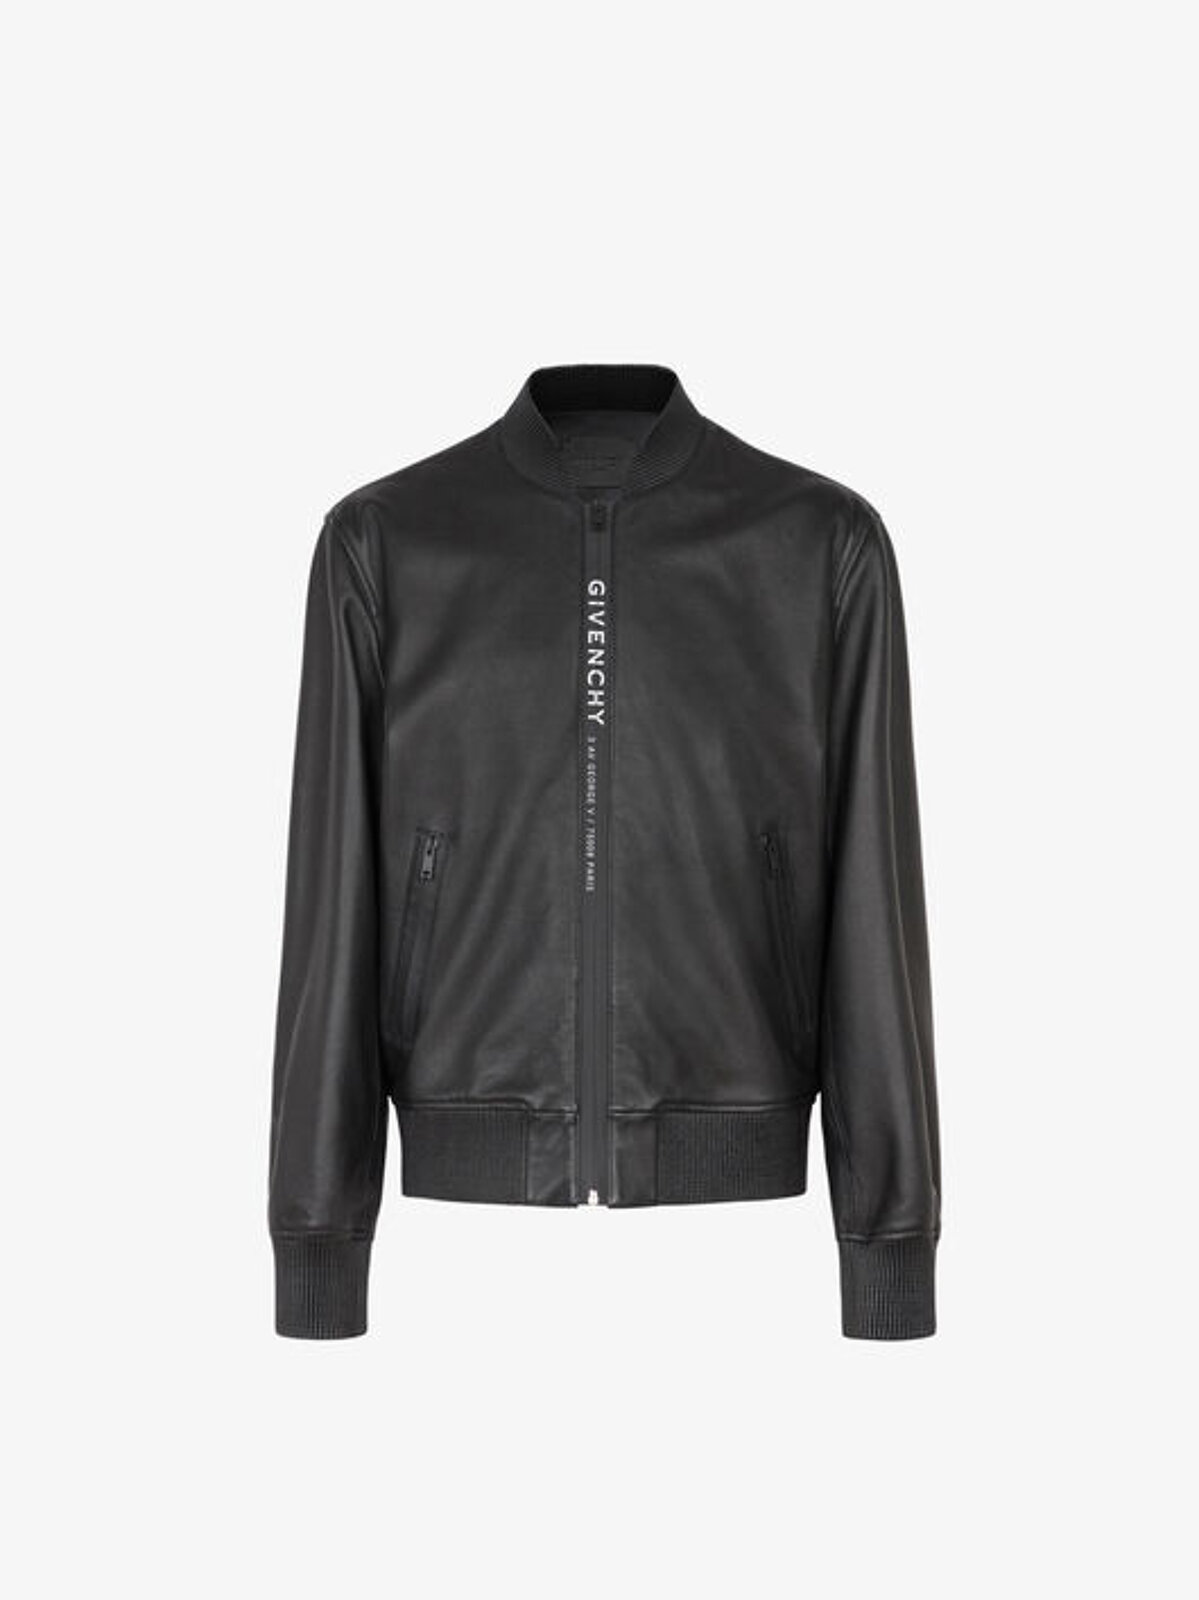 Bomber Di Pelle Adresse Givenchy - Givenchy